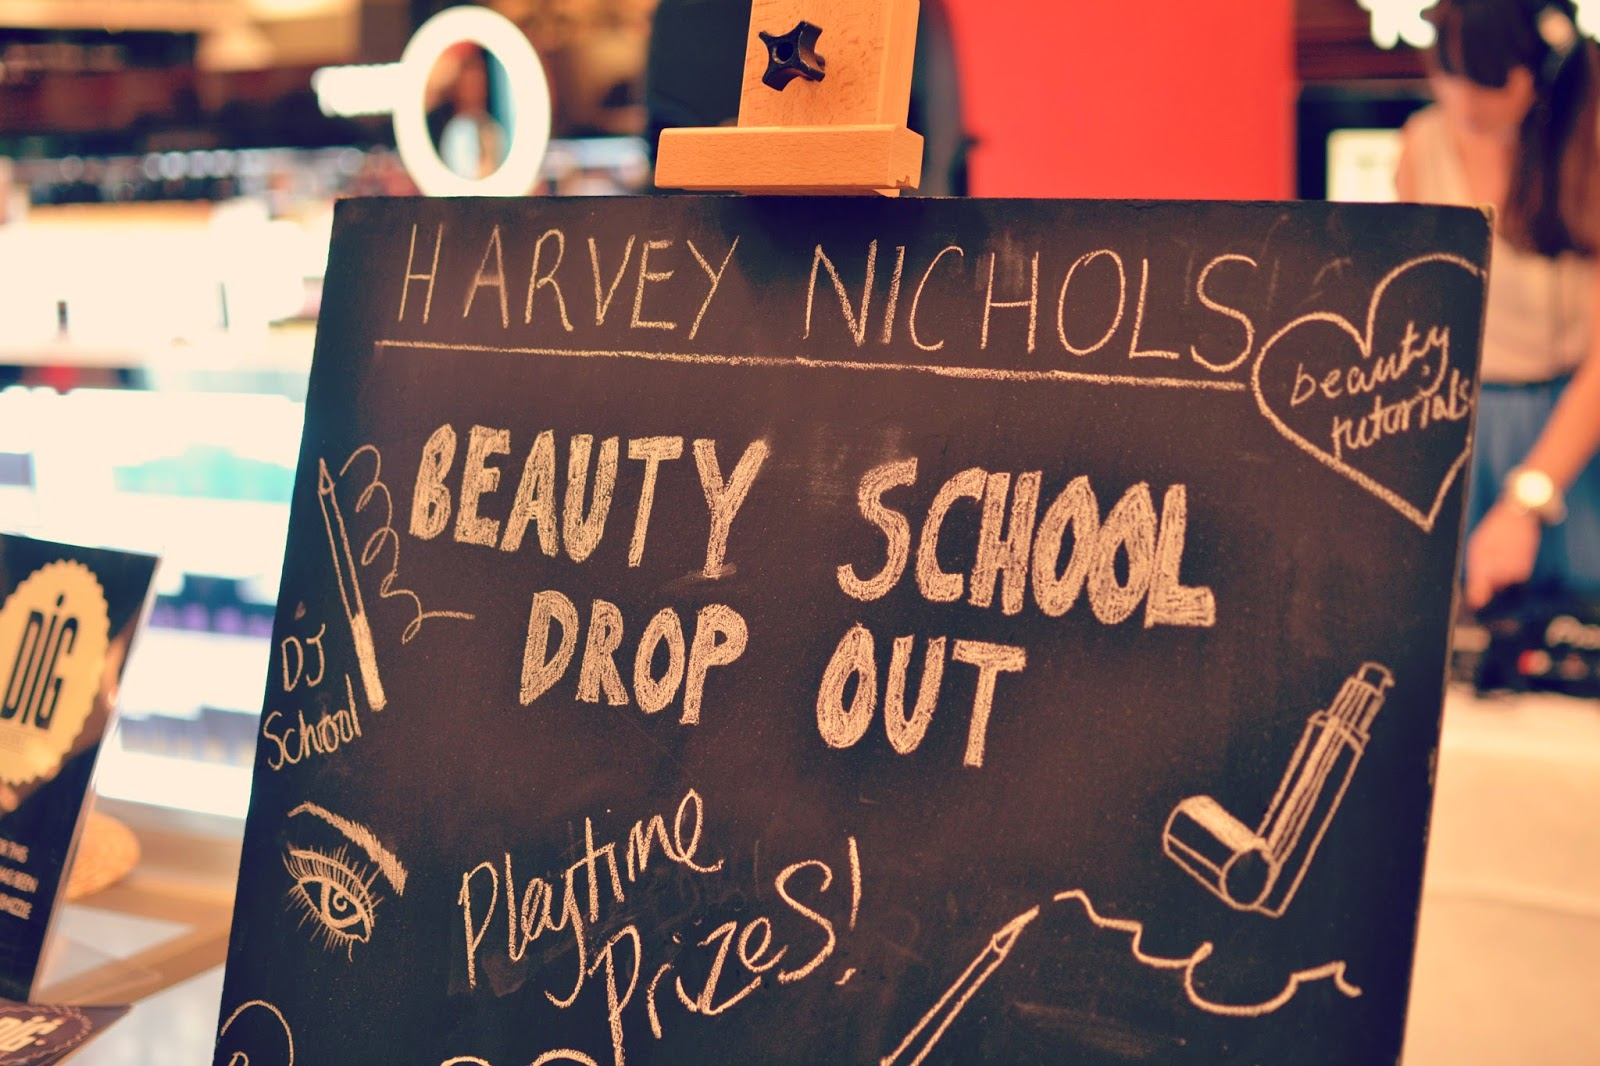 Harvey Nichols Beauty School Drop Out